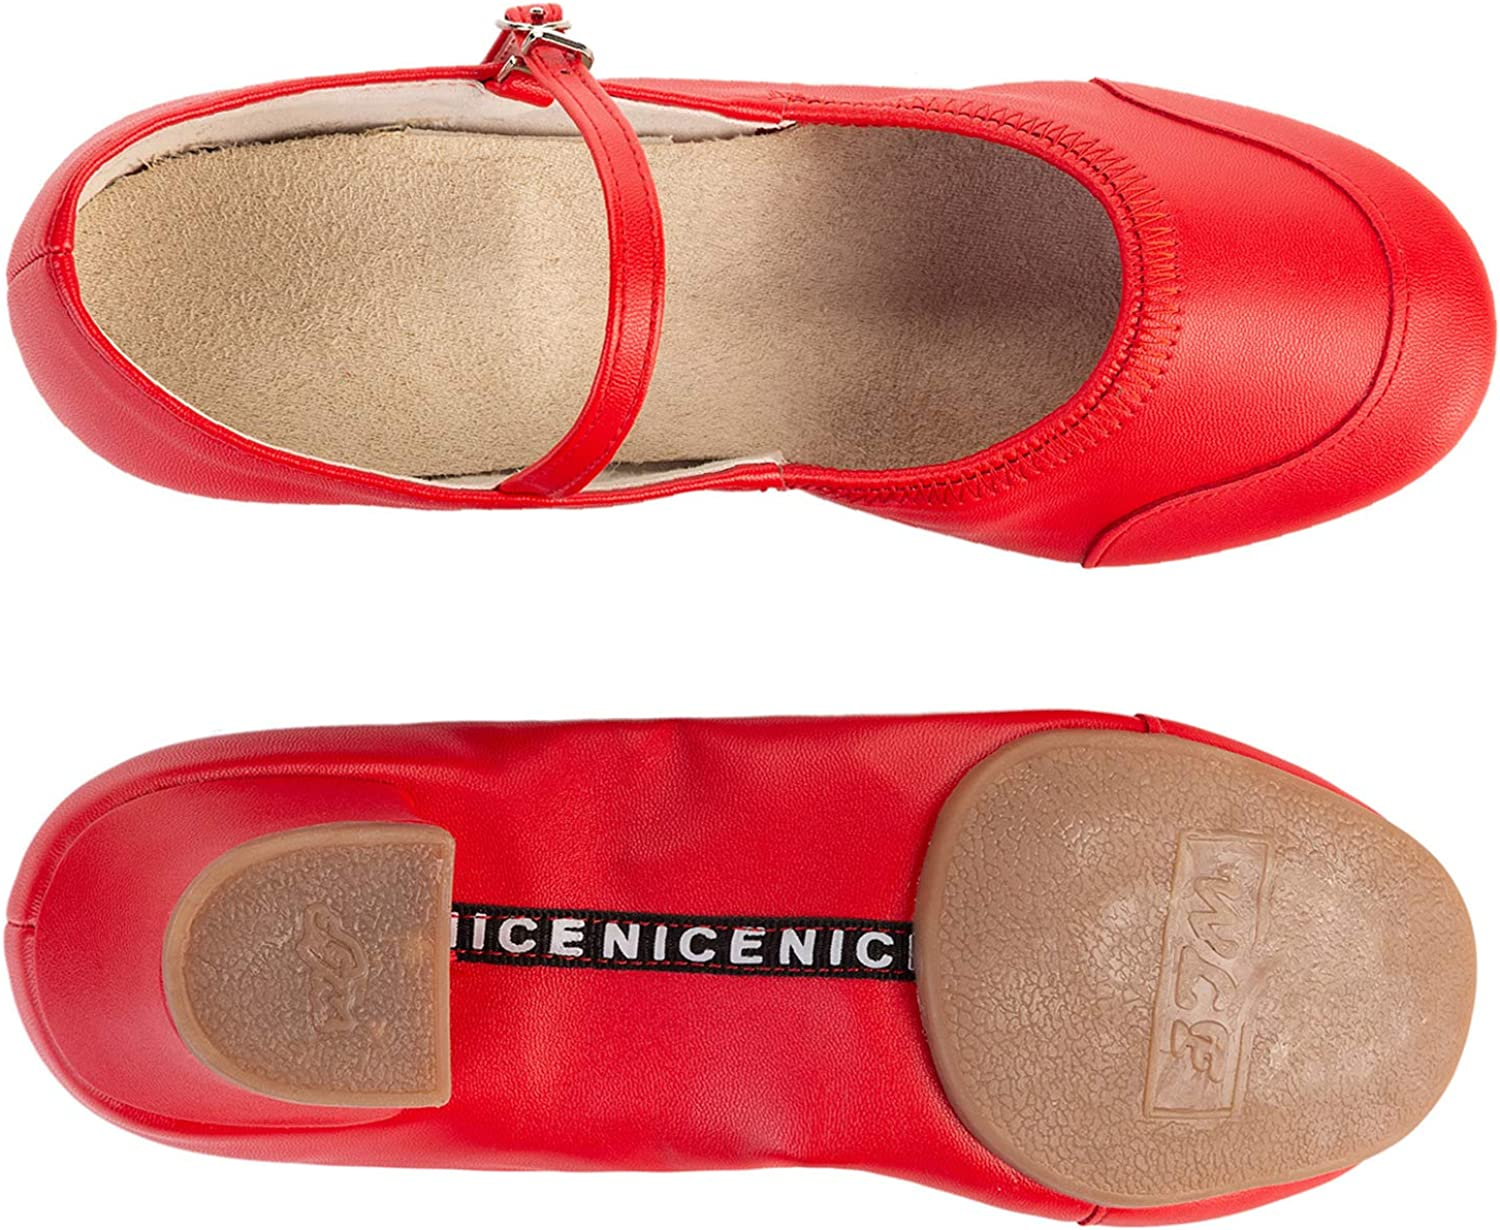 FEETCITY Girls Soft-Soled Latin Ballroom Dance Shoes with Leather Strap Red 3 Little Kid